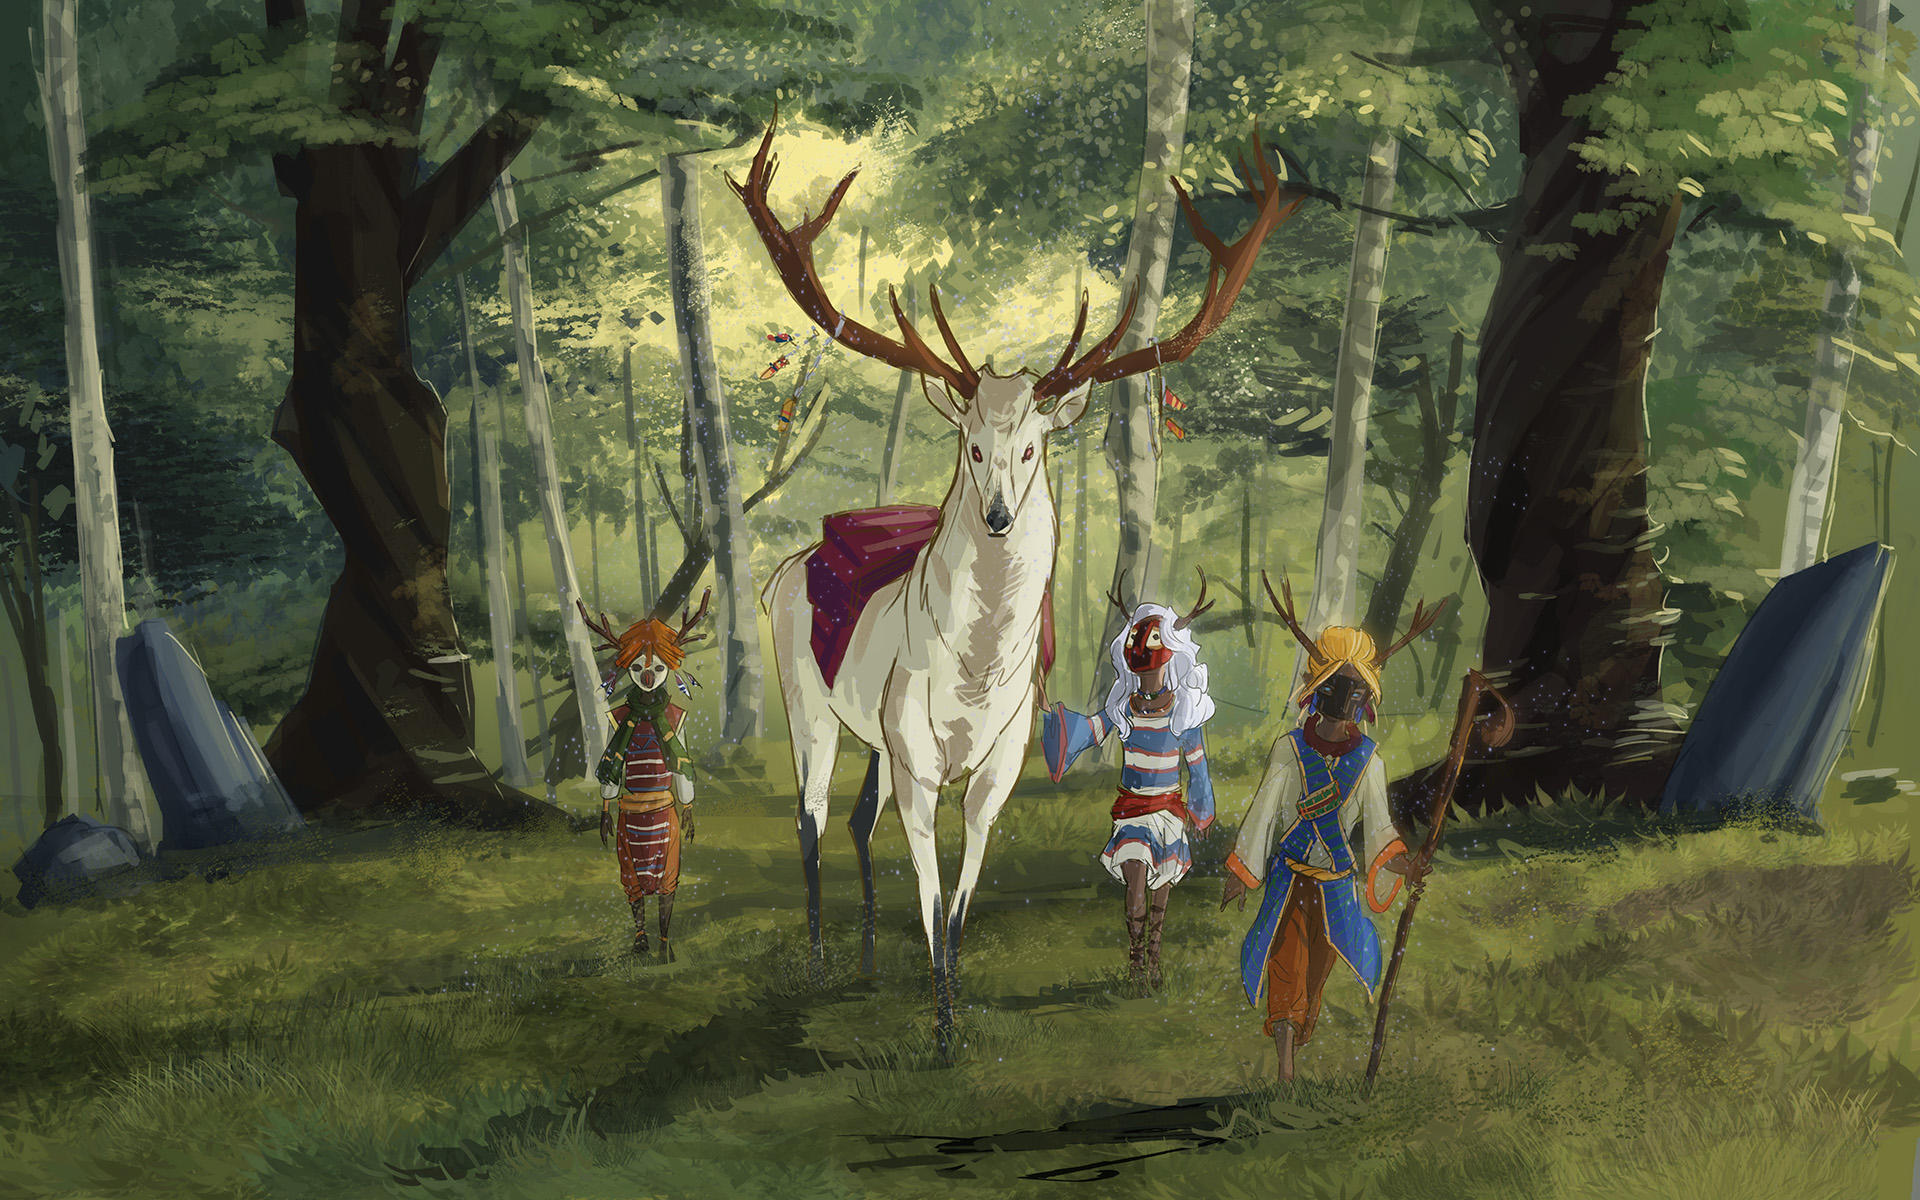 Children of the forest by nfouque